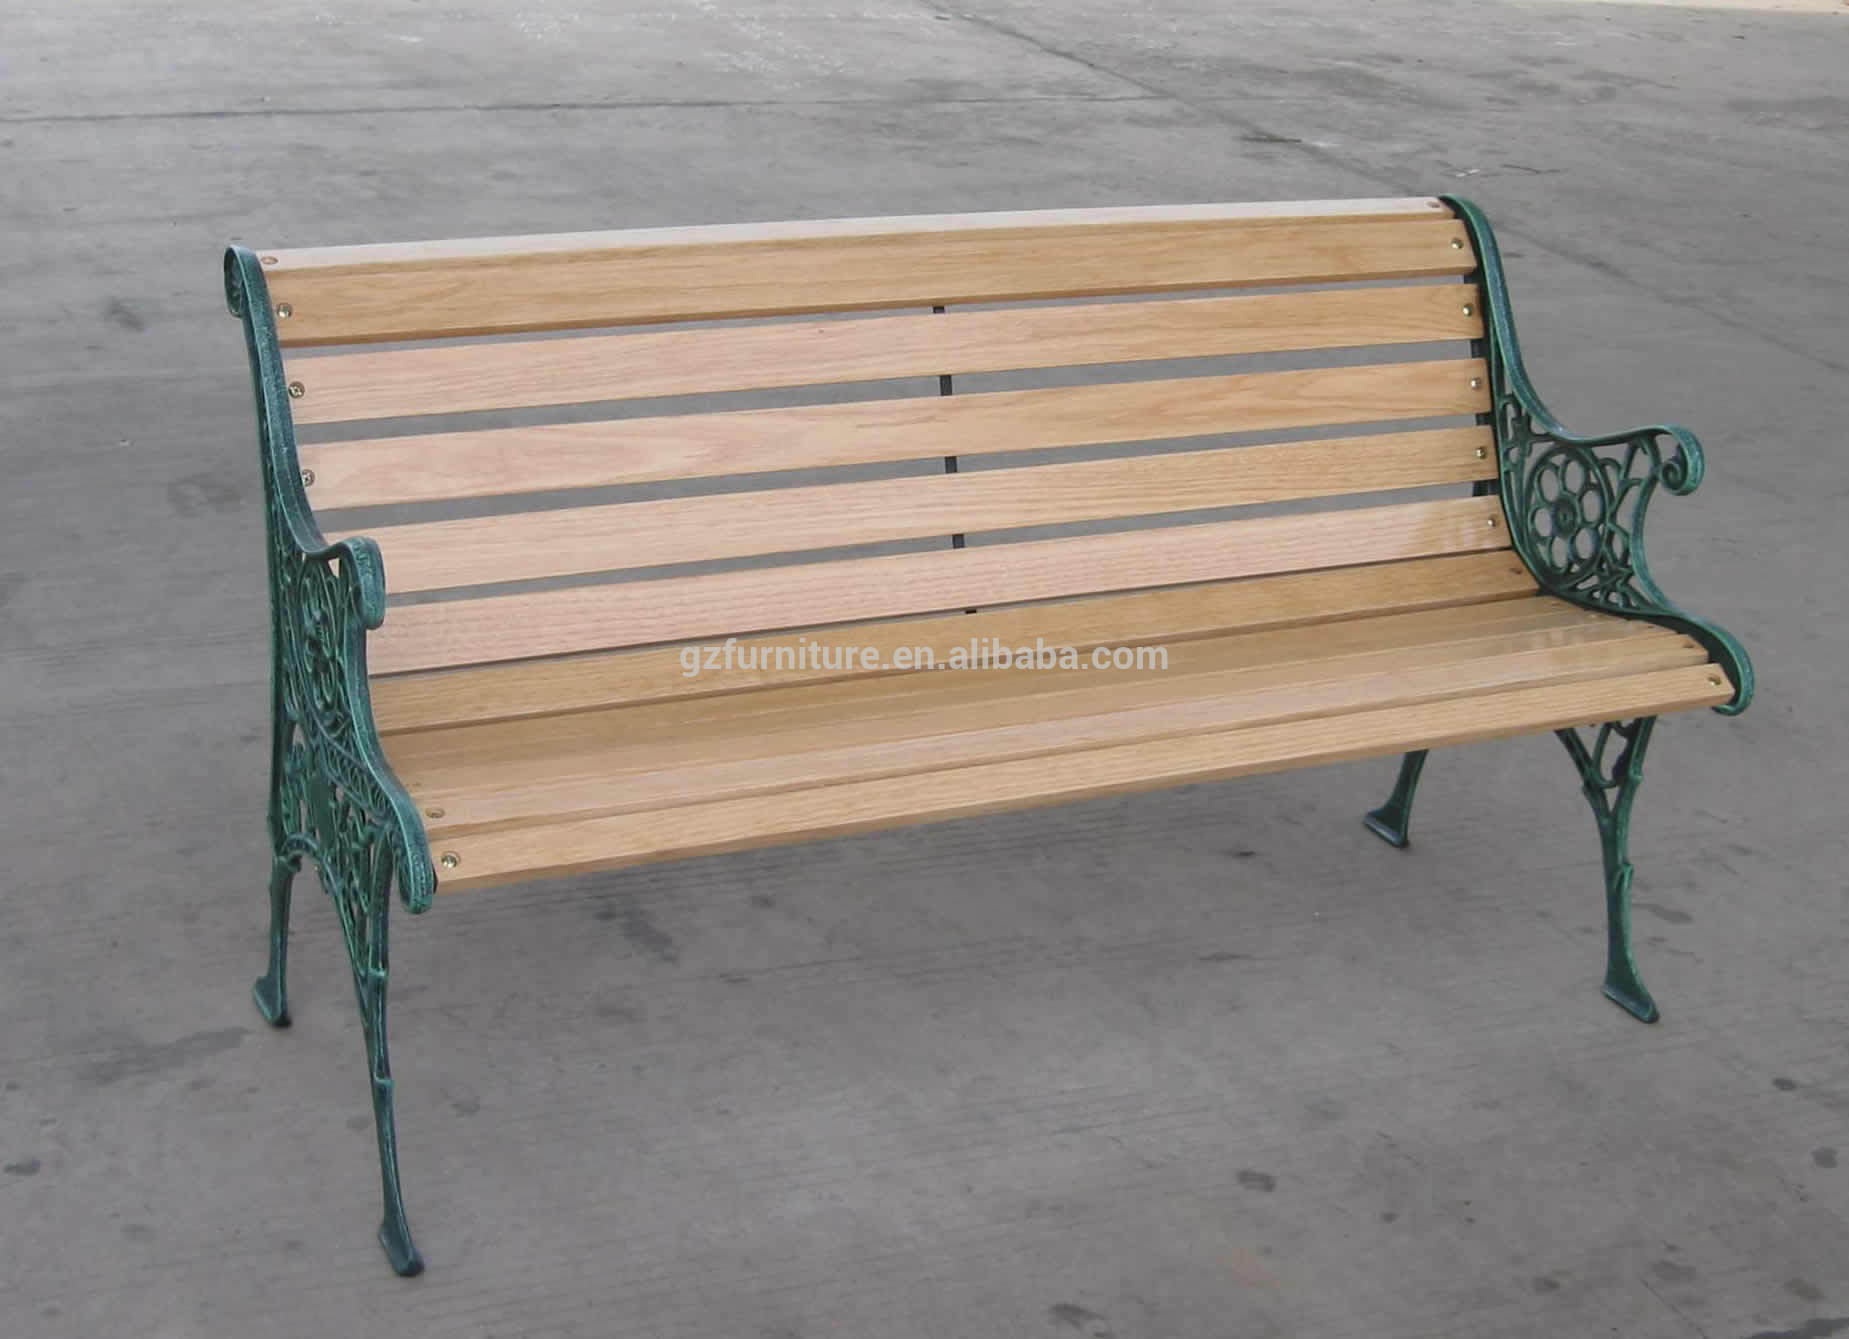 Outdoor Cast Iron Garden Bench Buy Wooden Slats With Cast Iron